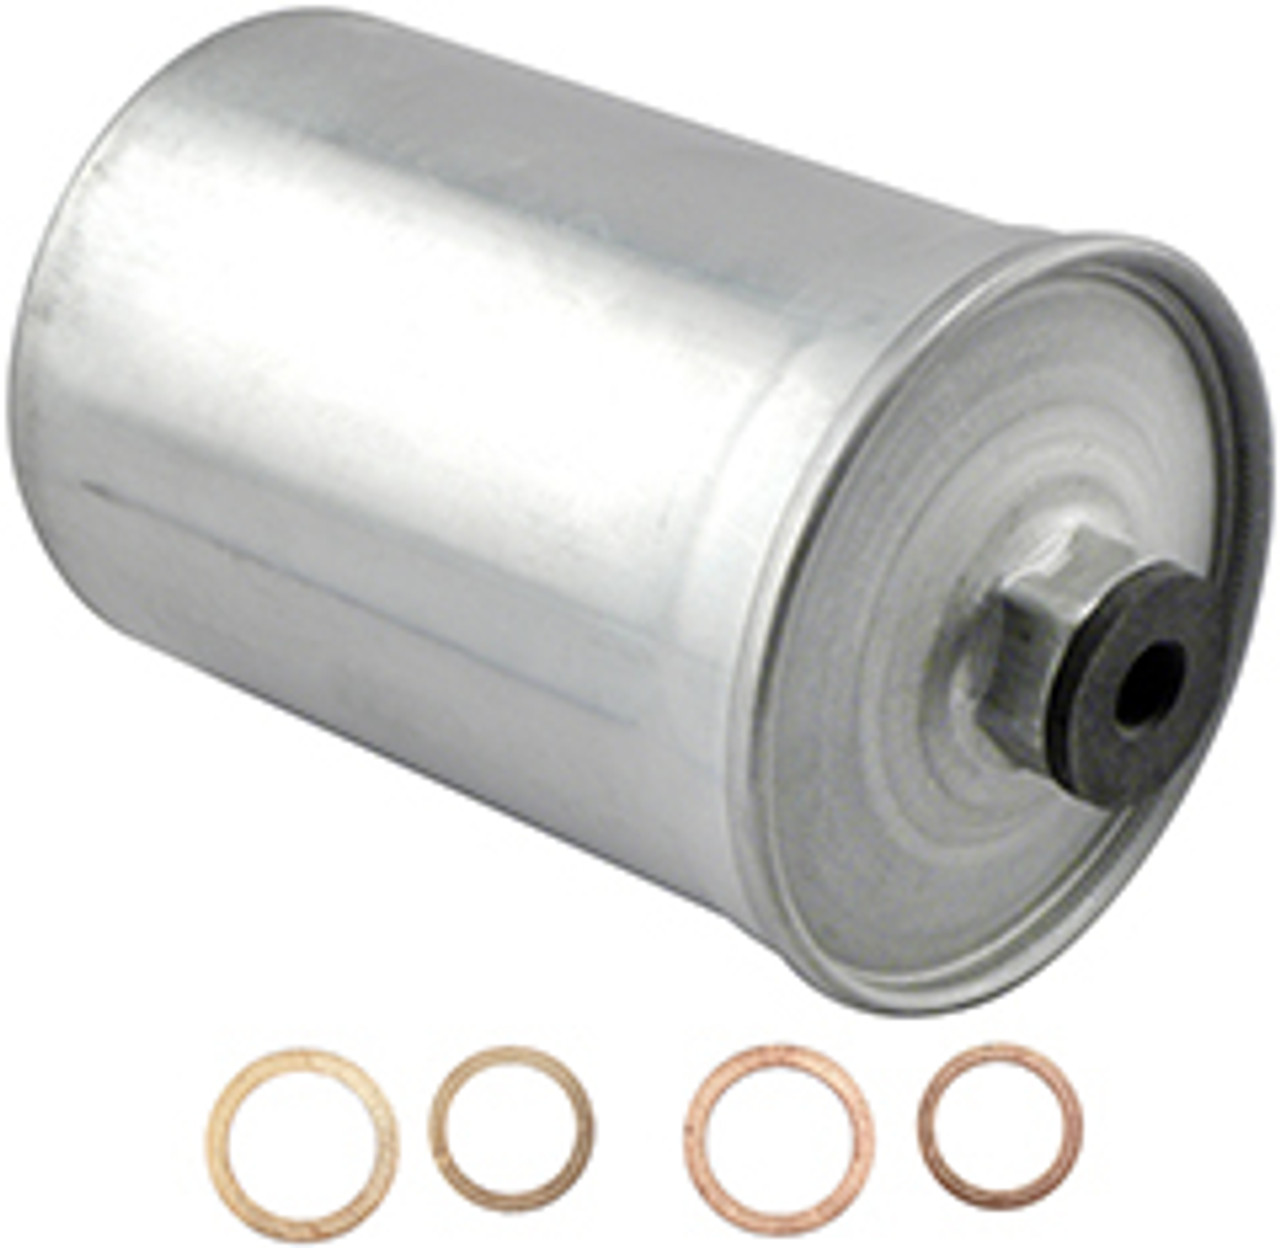 27 fuel filter with pad delorean industriesfuel filter with pad